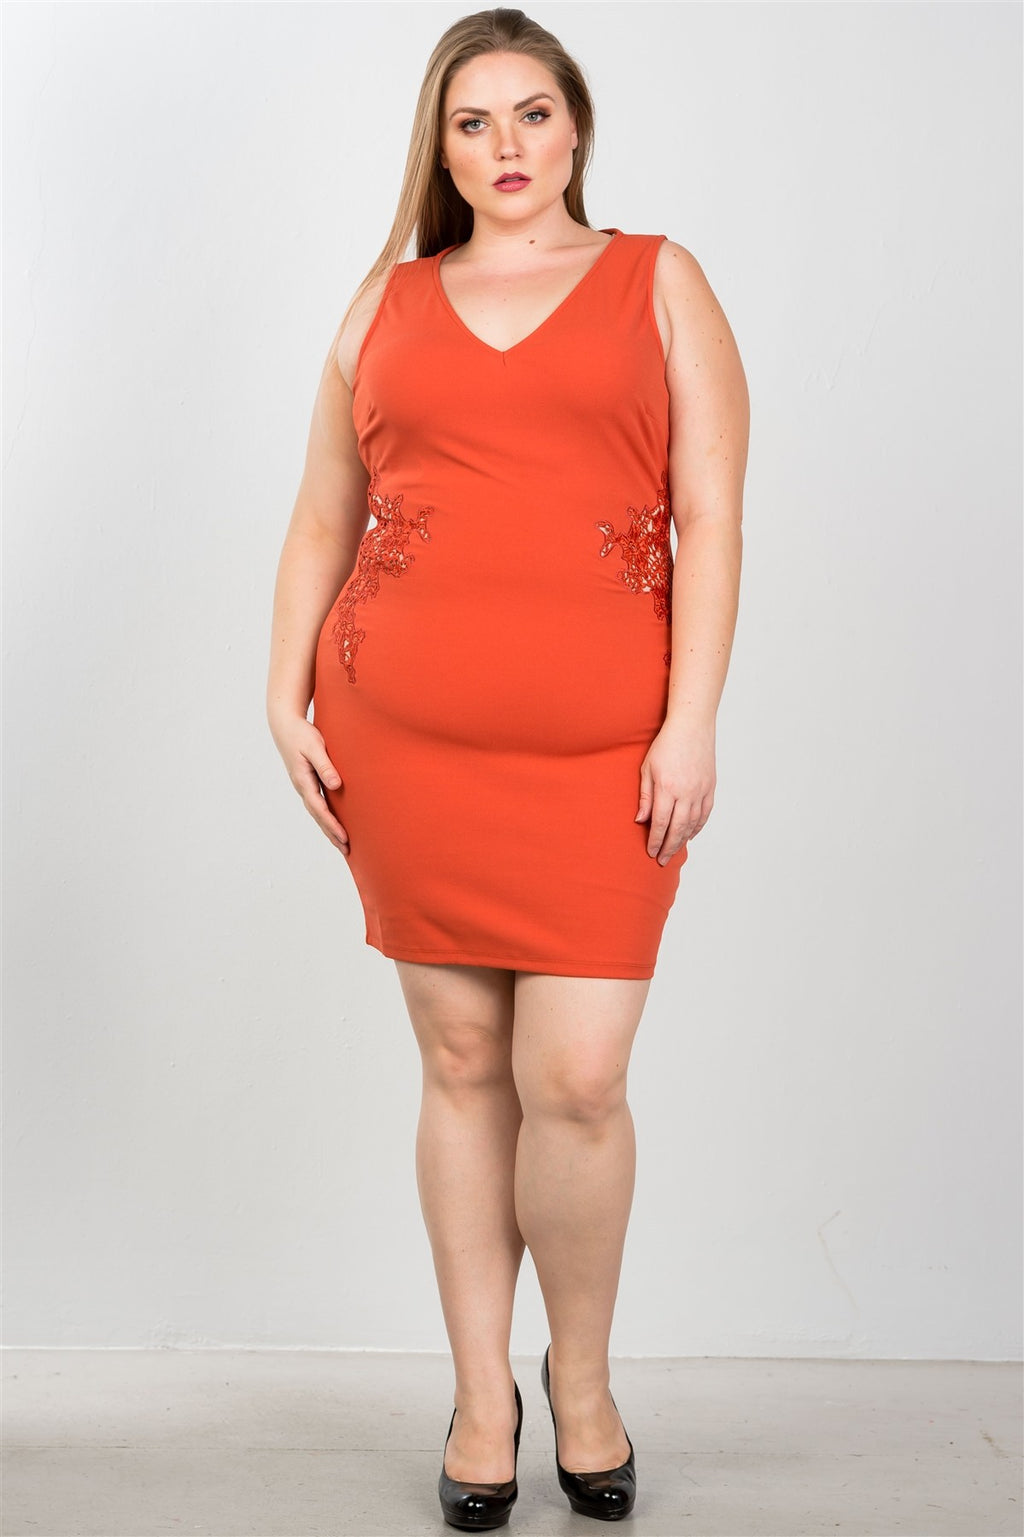 Ladies fashion plus size sexy ginger crochet side cut out mini dress